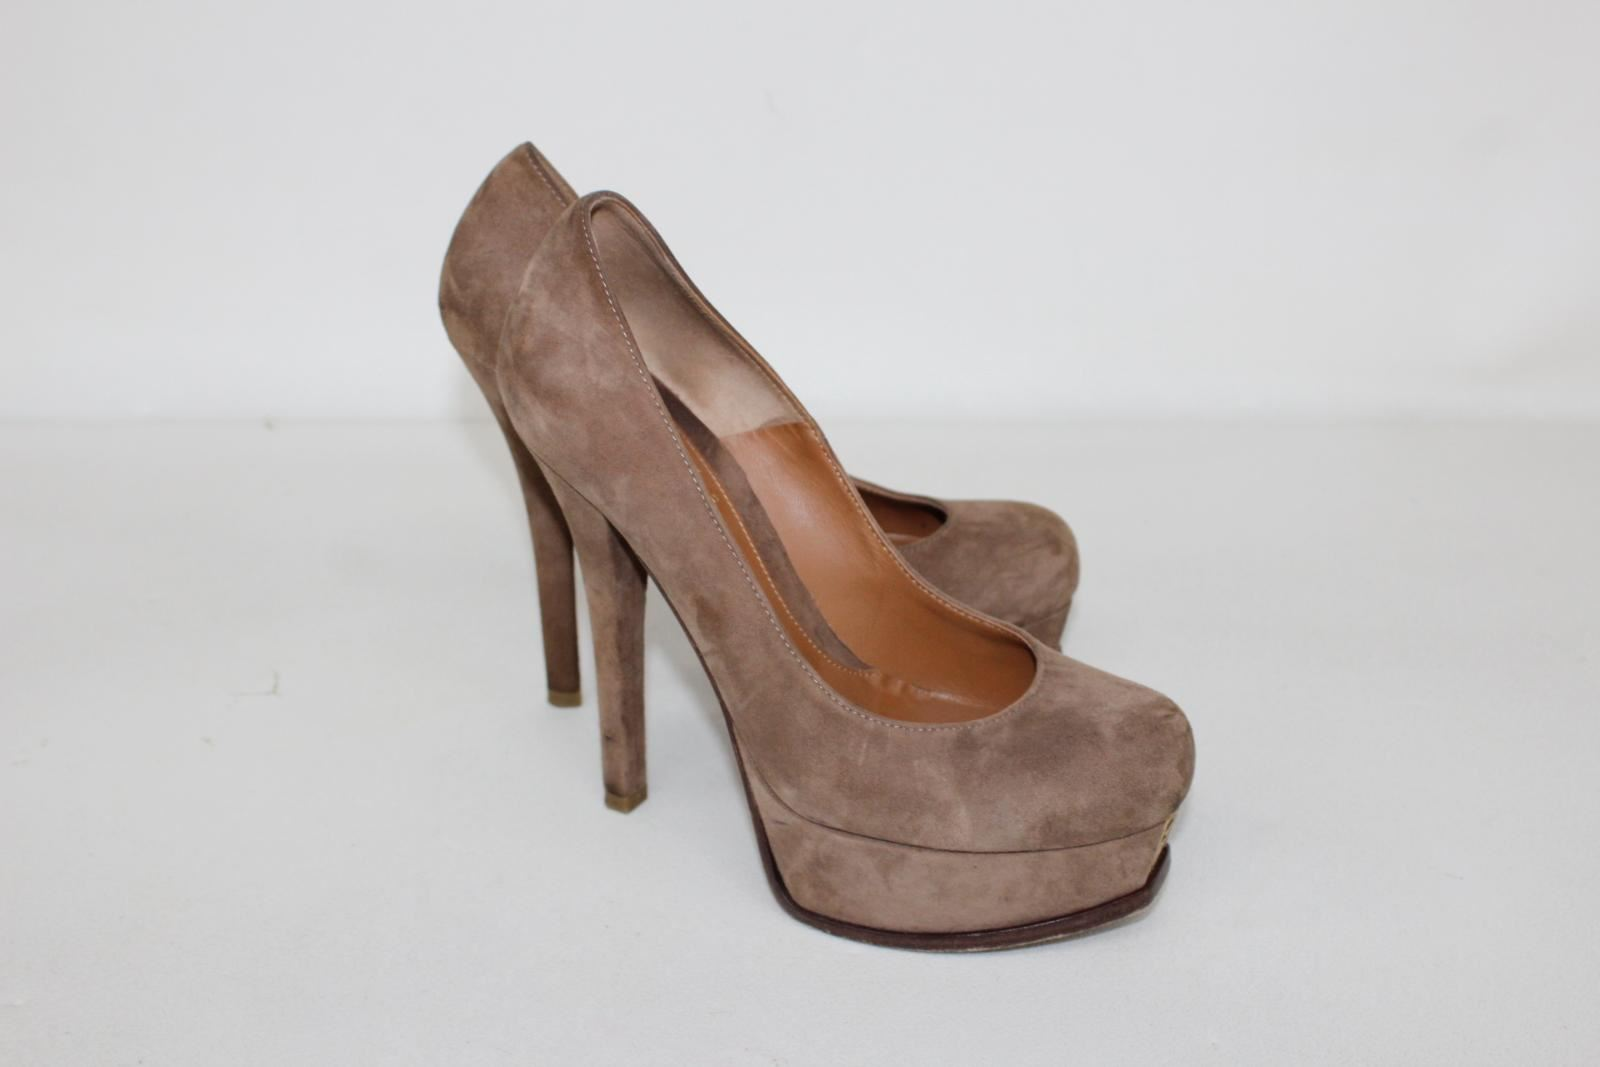 FENDI-Ladies-Platform-Brown-Suede-Stiletto-Heel-Pump-Court-Shoes-UK4-EU37